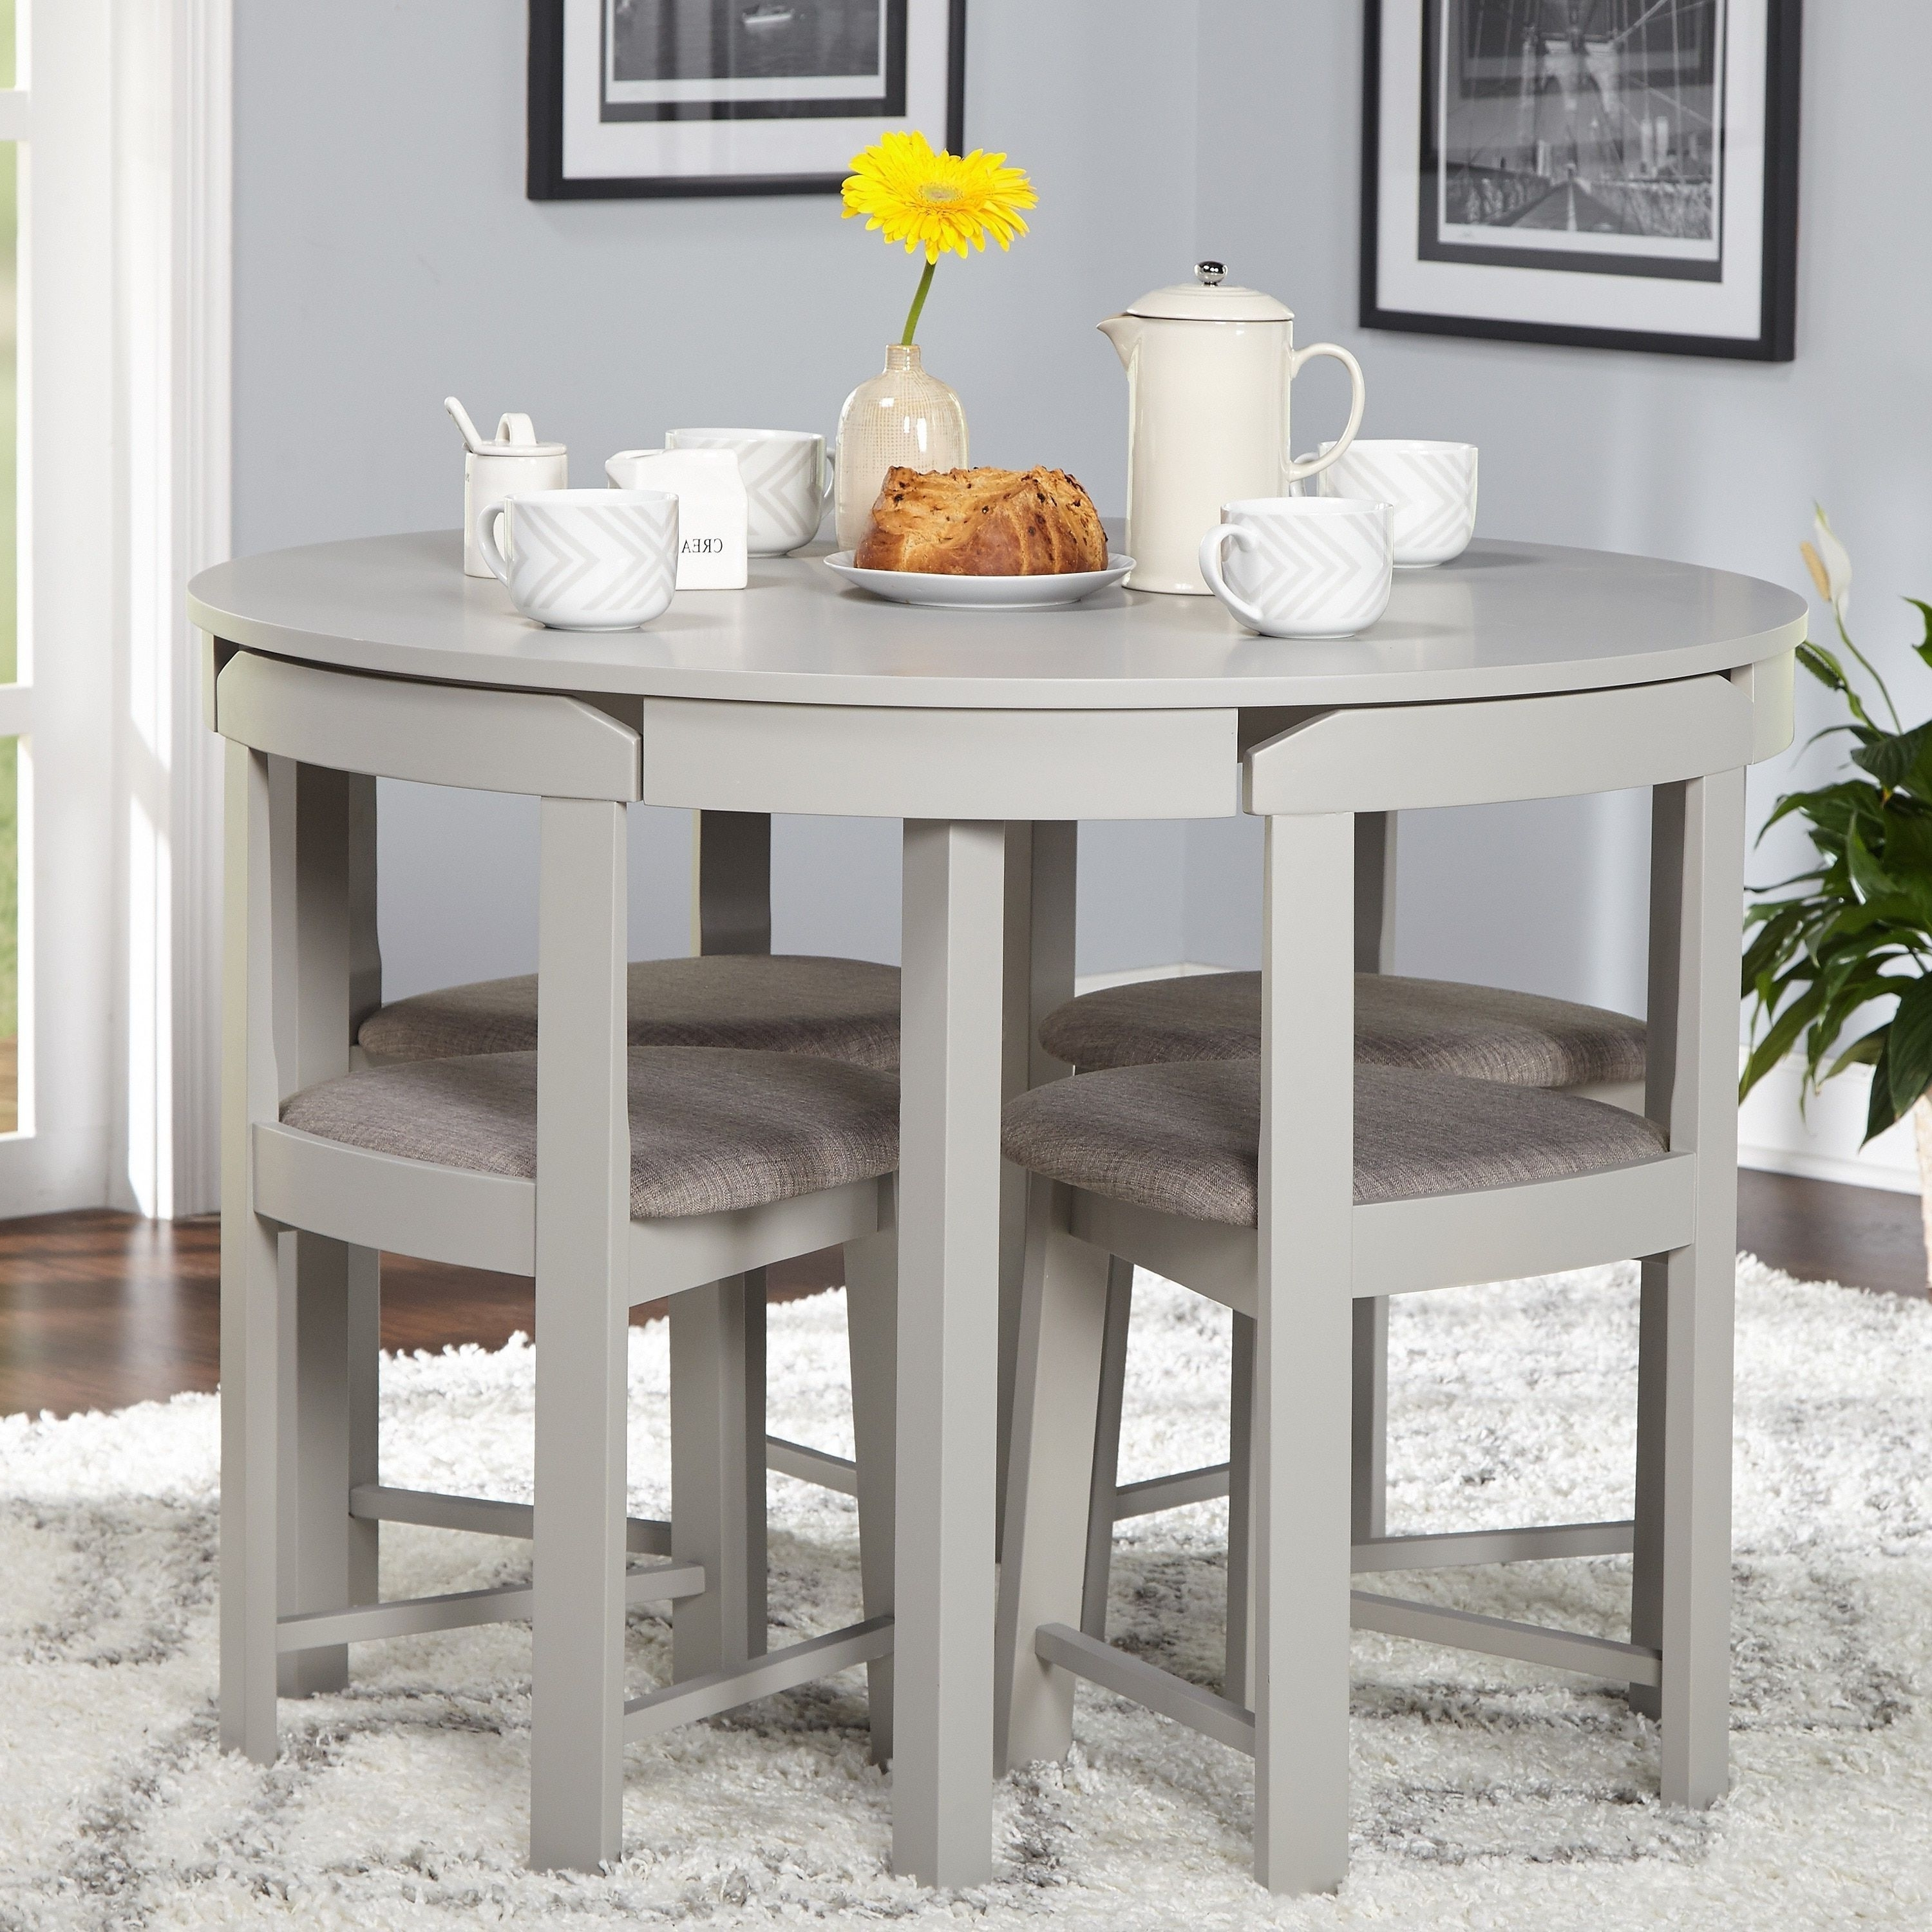 Widely Used Lassen 5 Piece Round Dining Sets Intended For Perfect For Smaller Spaces The 5 Piece Tobey Compact Dining Set (View 25 of 25)